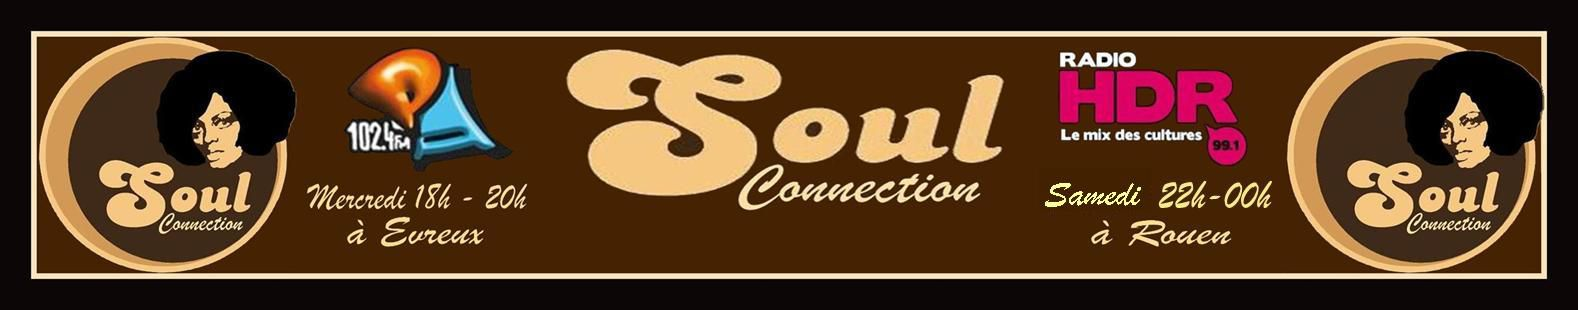 Bandeau Soul Connection 3